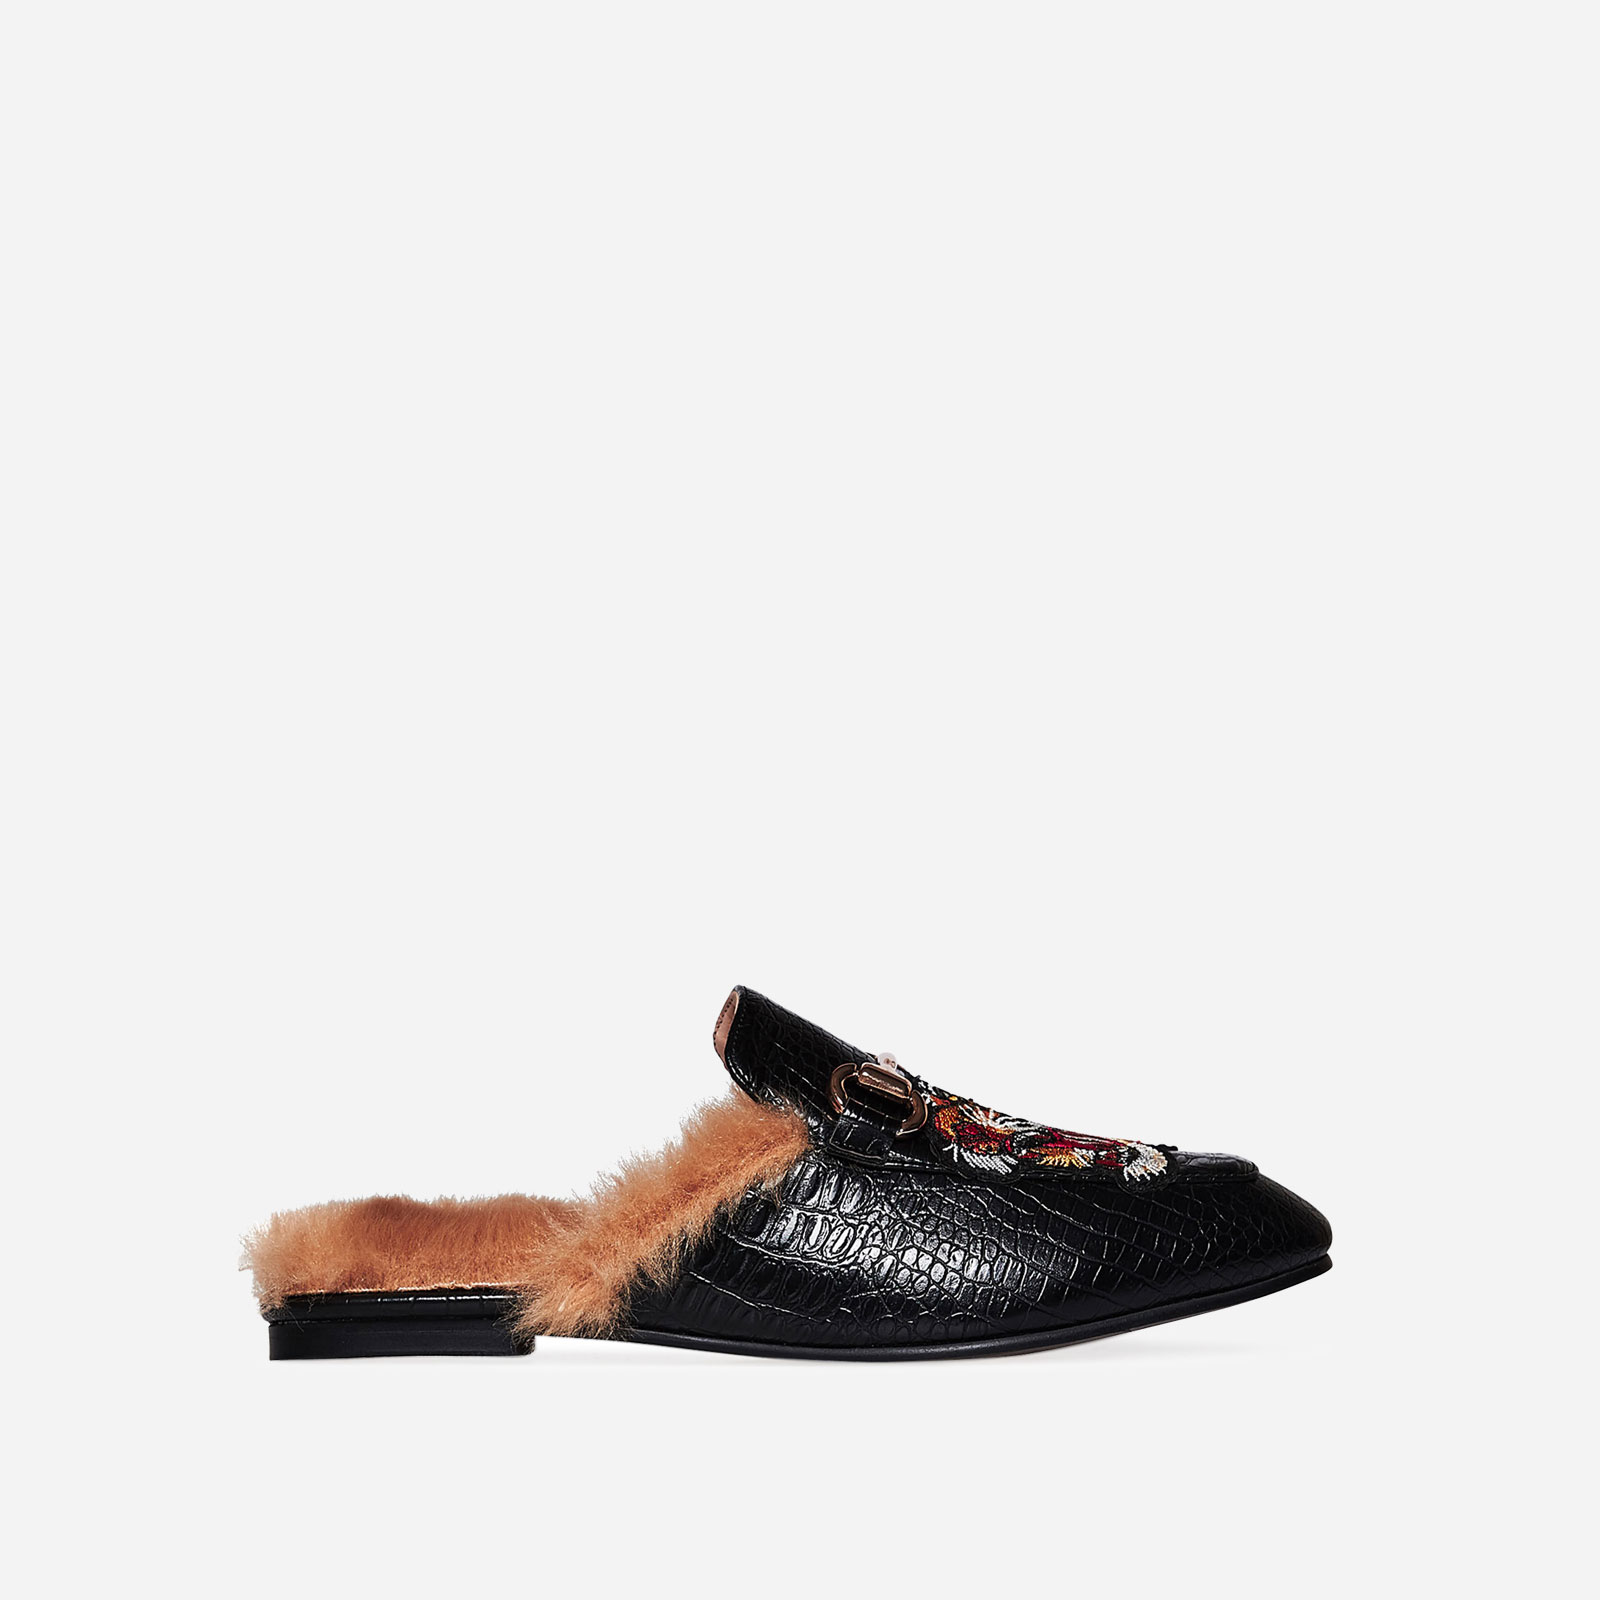 Kapri Embroidered Faux Fur Lined Slip On Mule In Black Croc Faux Leather